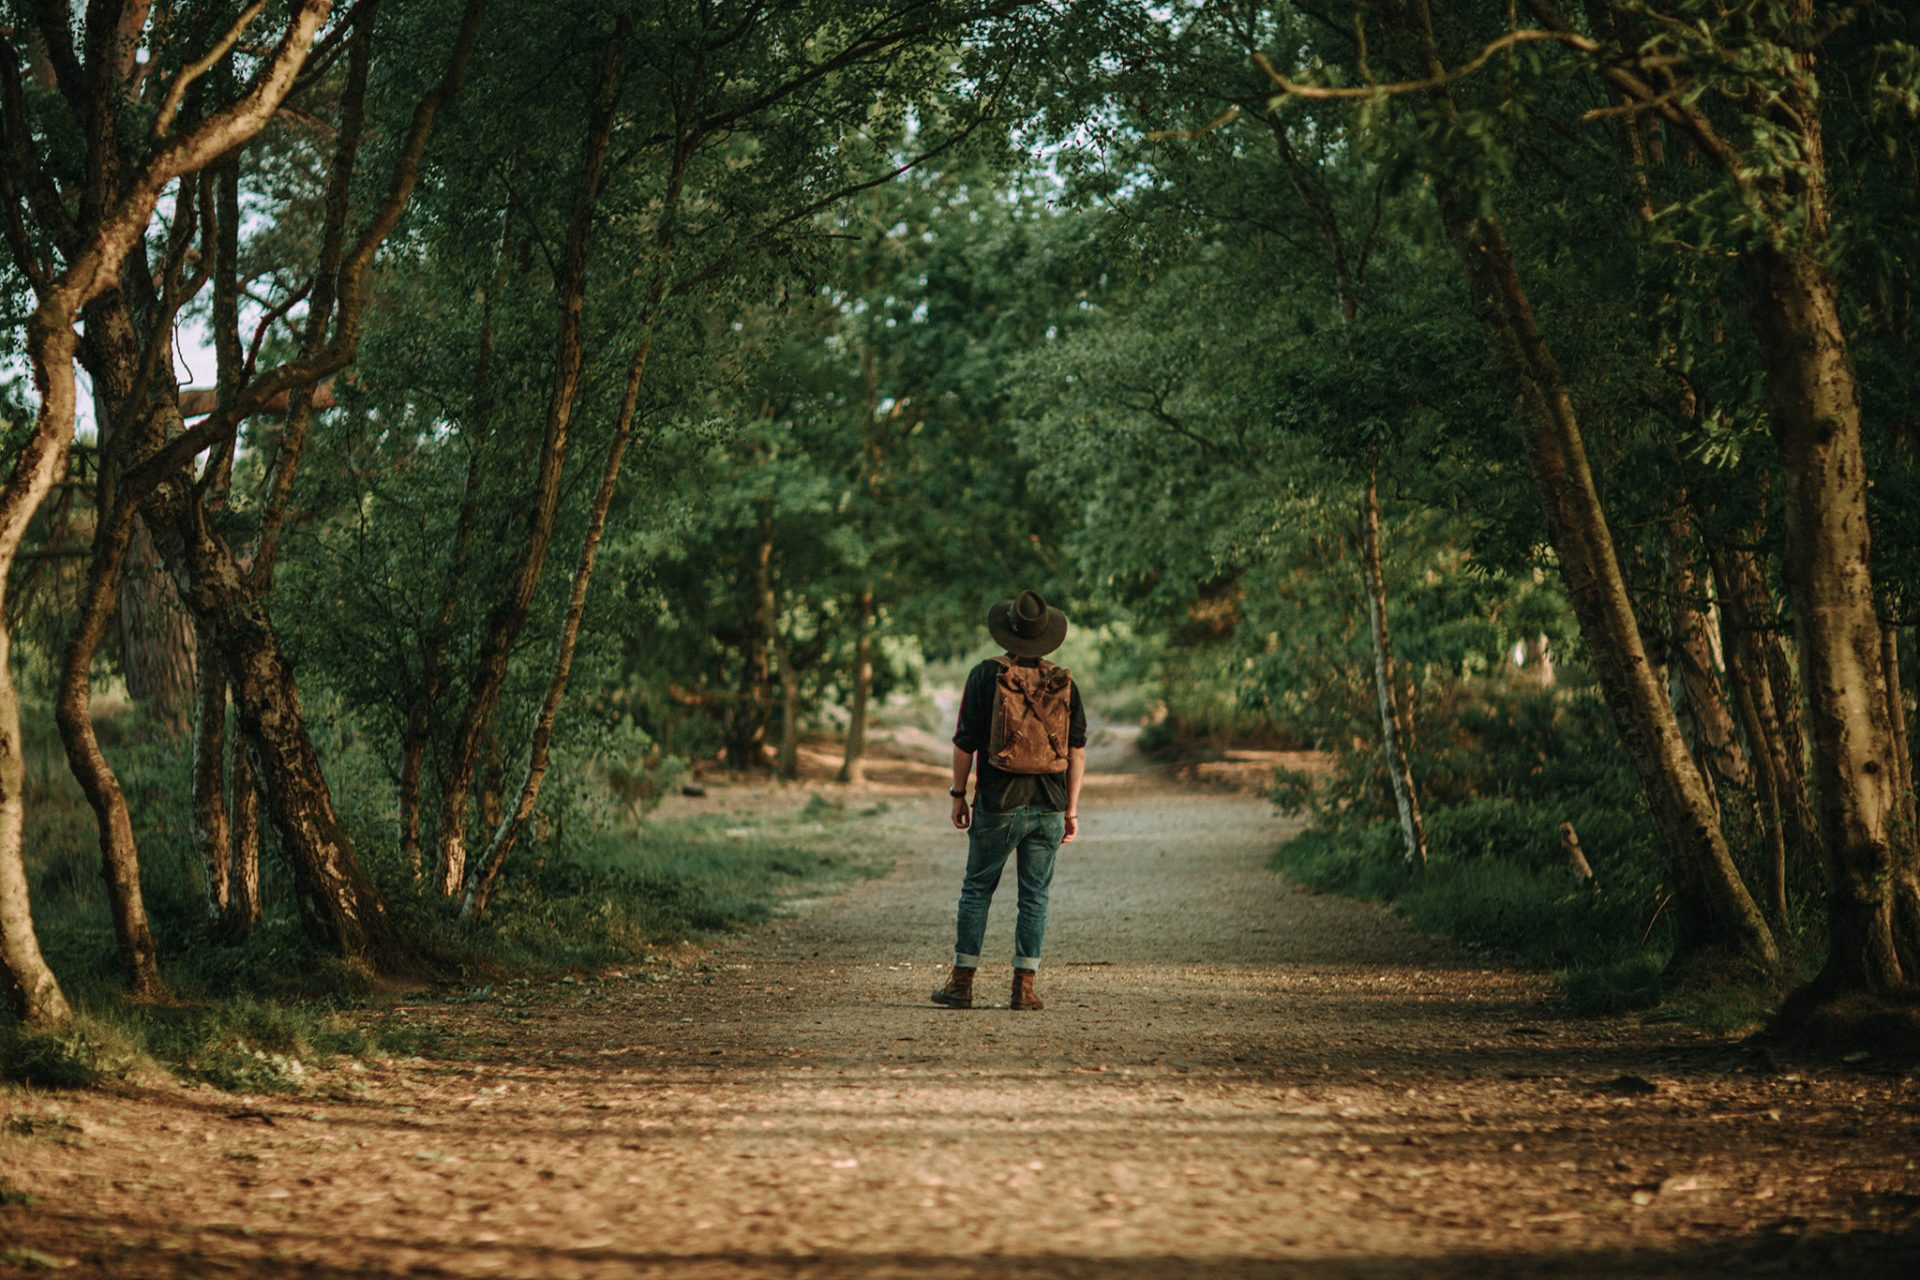 Waxed Cotton Canvas and Leather Backpack Rucksack - Menswear Denim Rugged Style Outfit Royden Park, Wirral, Merseyside - The Harlington in Sandstone by Oldfield - Photo by Samuel Mills